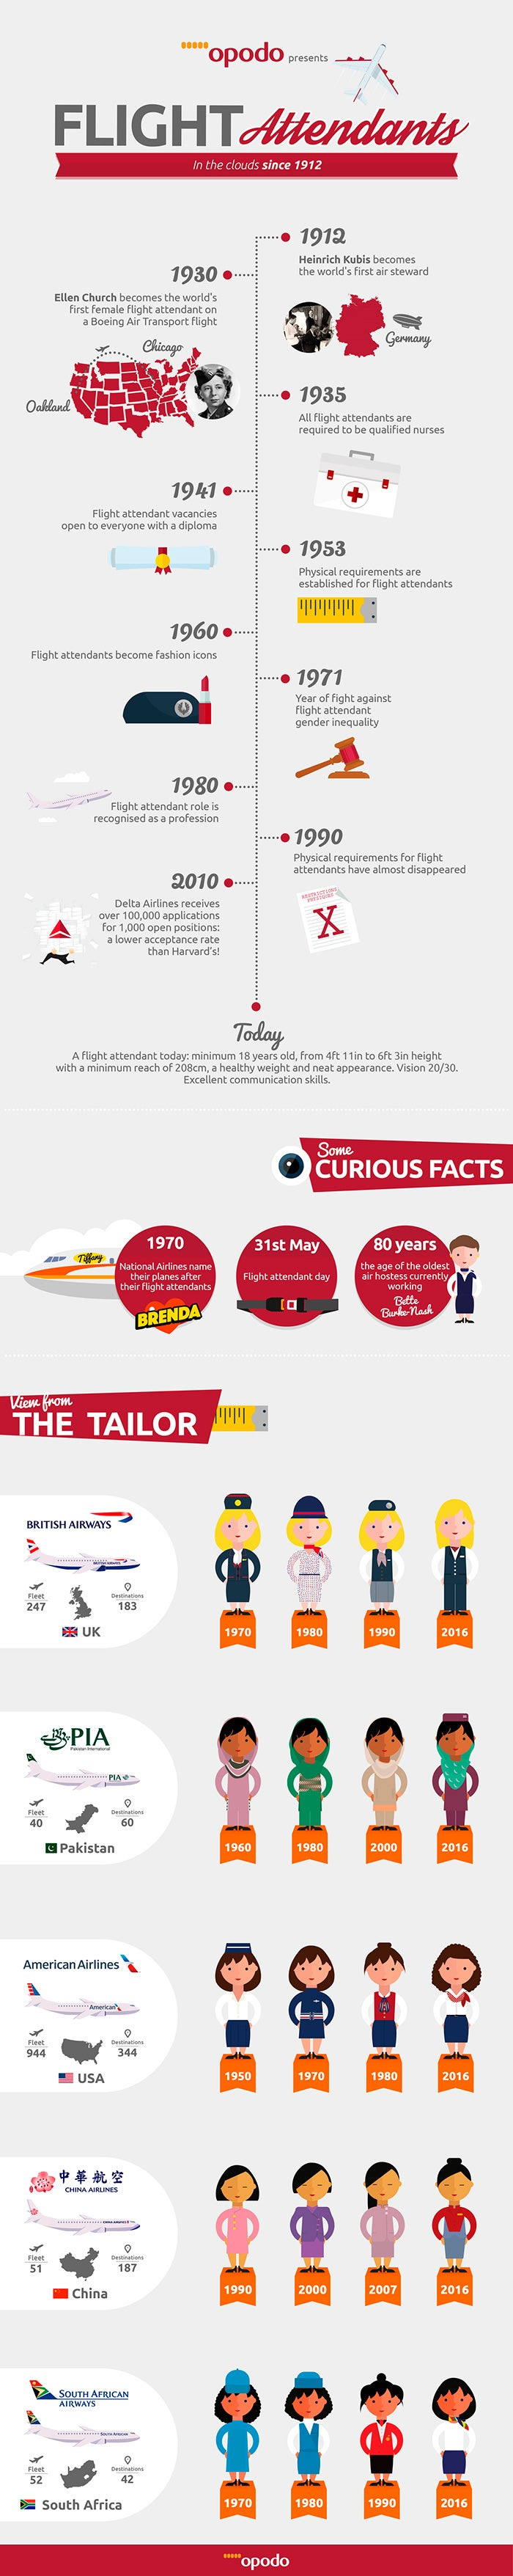 Flight attendants infographic